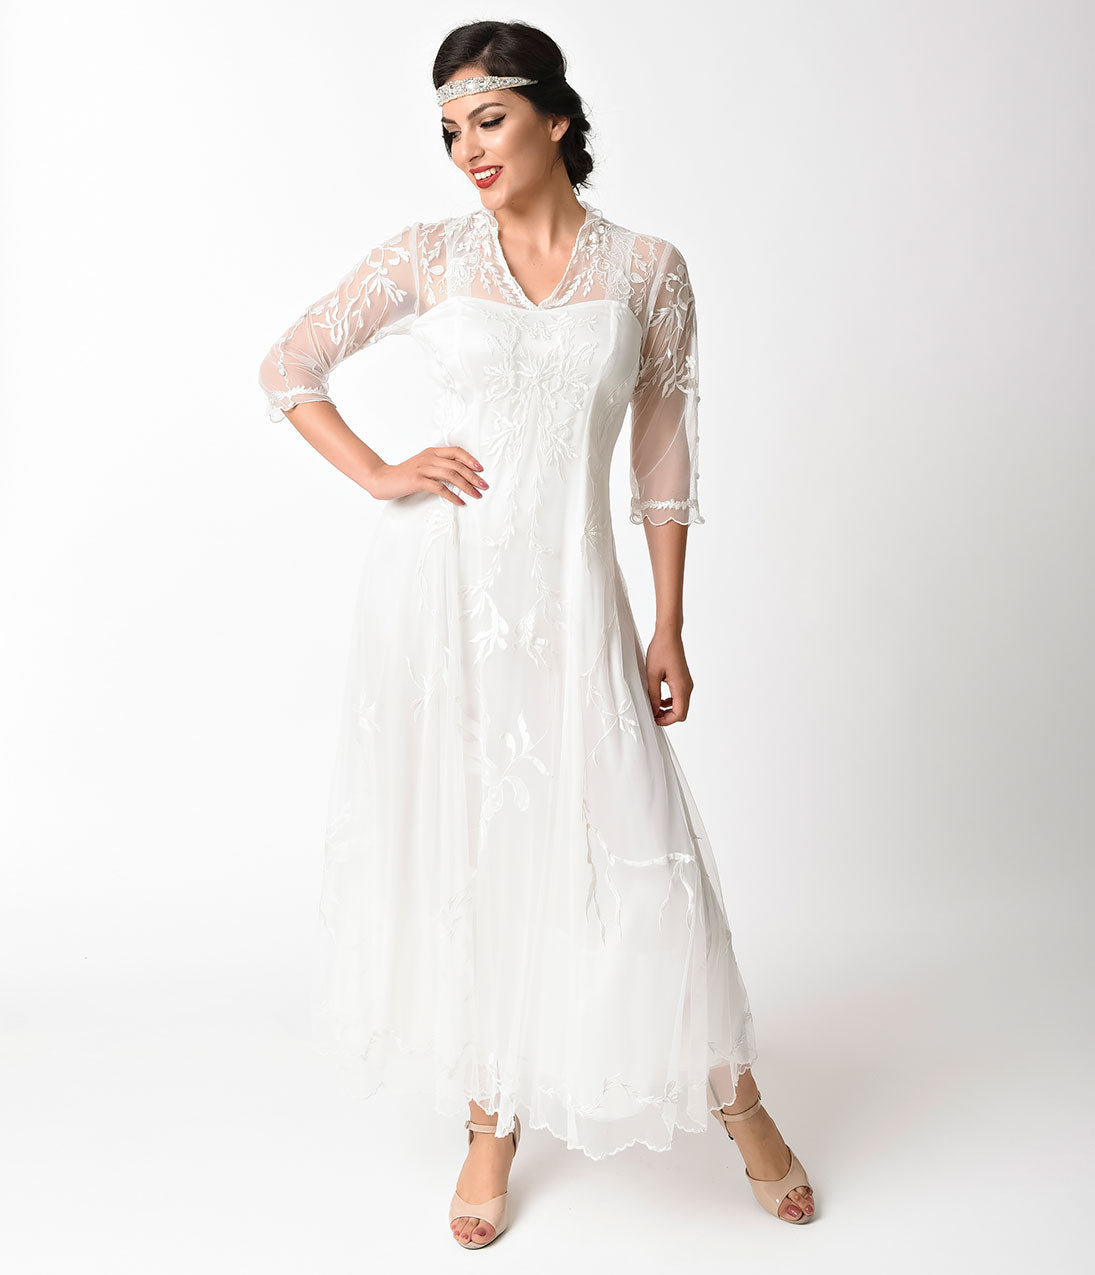 Vintage Inspired Wedding Dress | Vintage Style Wedding Dresses 1930S Vintage Style Ivory Tulle Sleeved Dress $348.00 AT vintagedancer.com